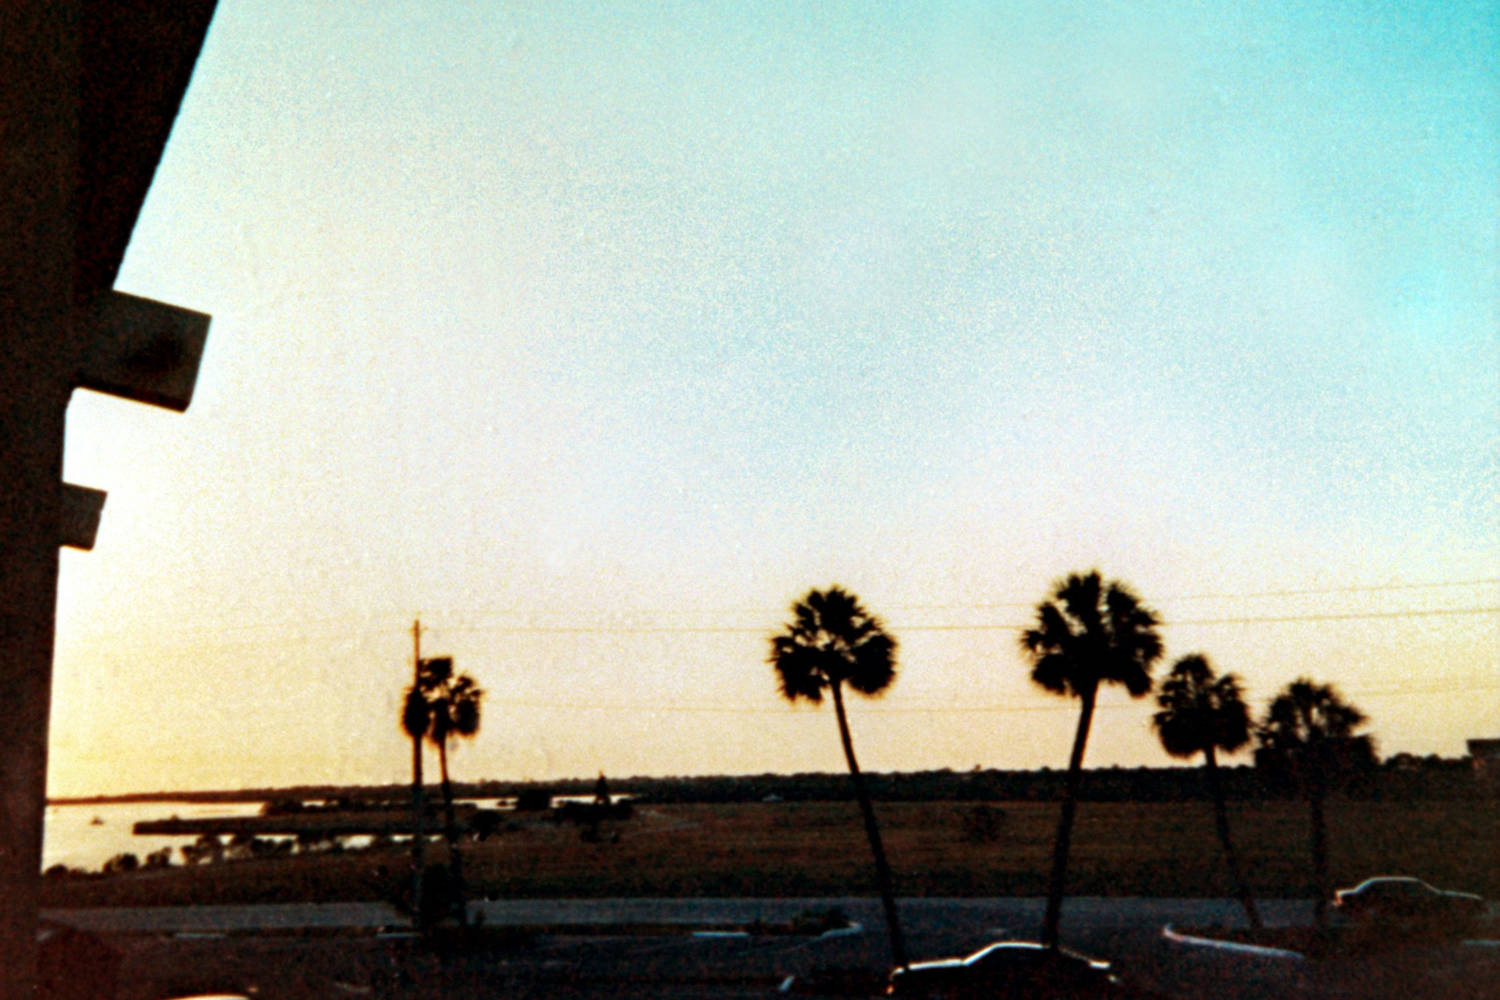 Sunset over the horizon, with scattered palm trees in the foreground.